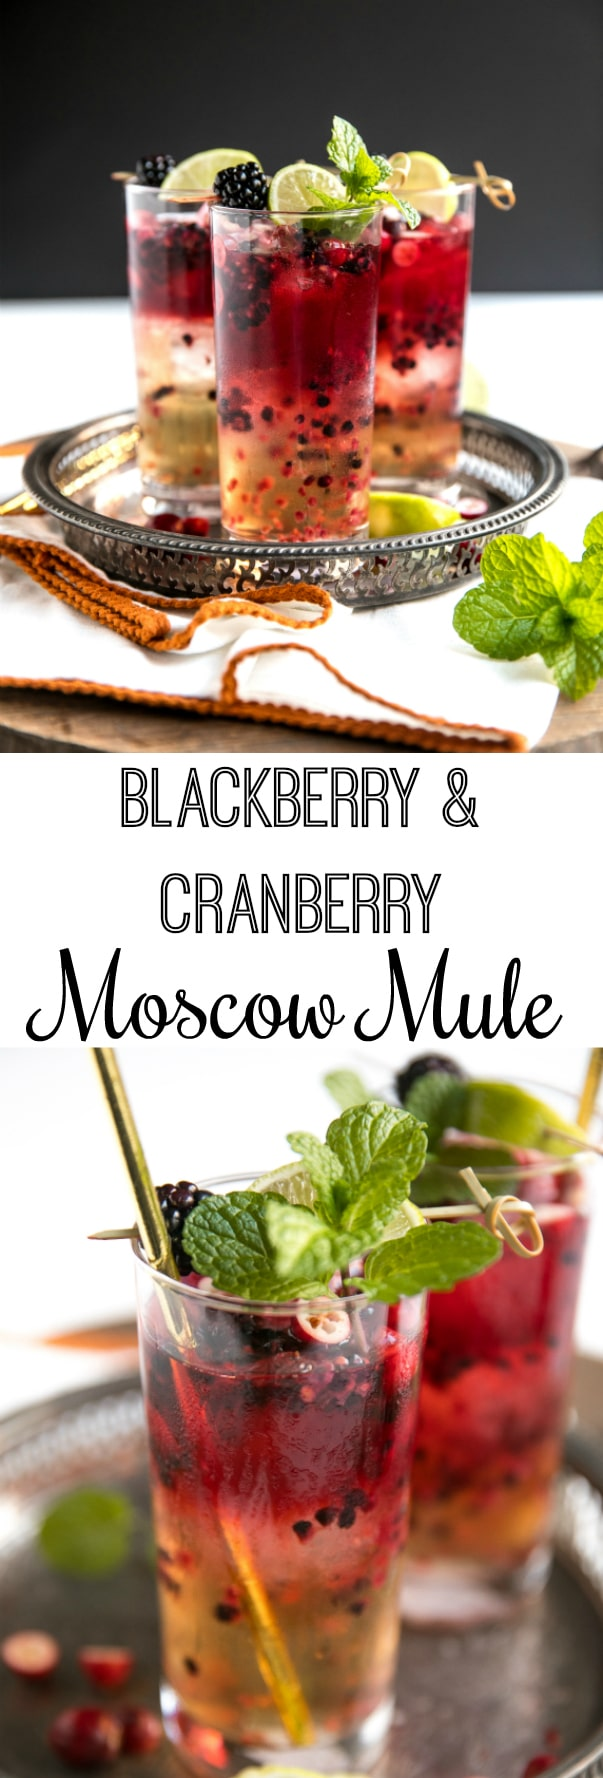 Blackberry Cranberry Moscow Mule #cocktail #moscowmule #vodka #recipe #theforkedspoon via @theforkedspoon